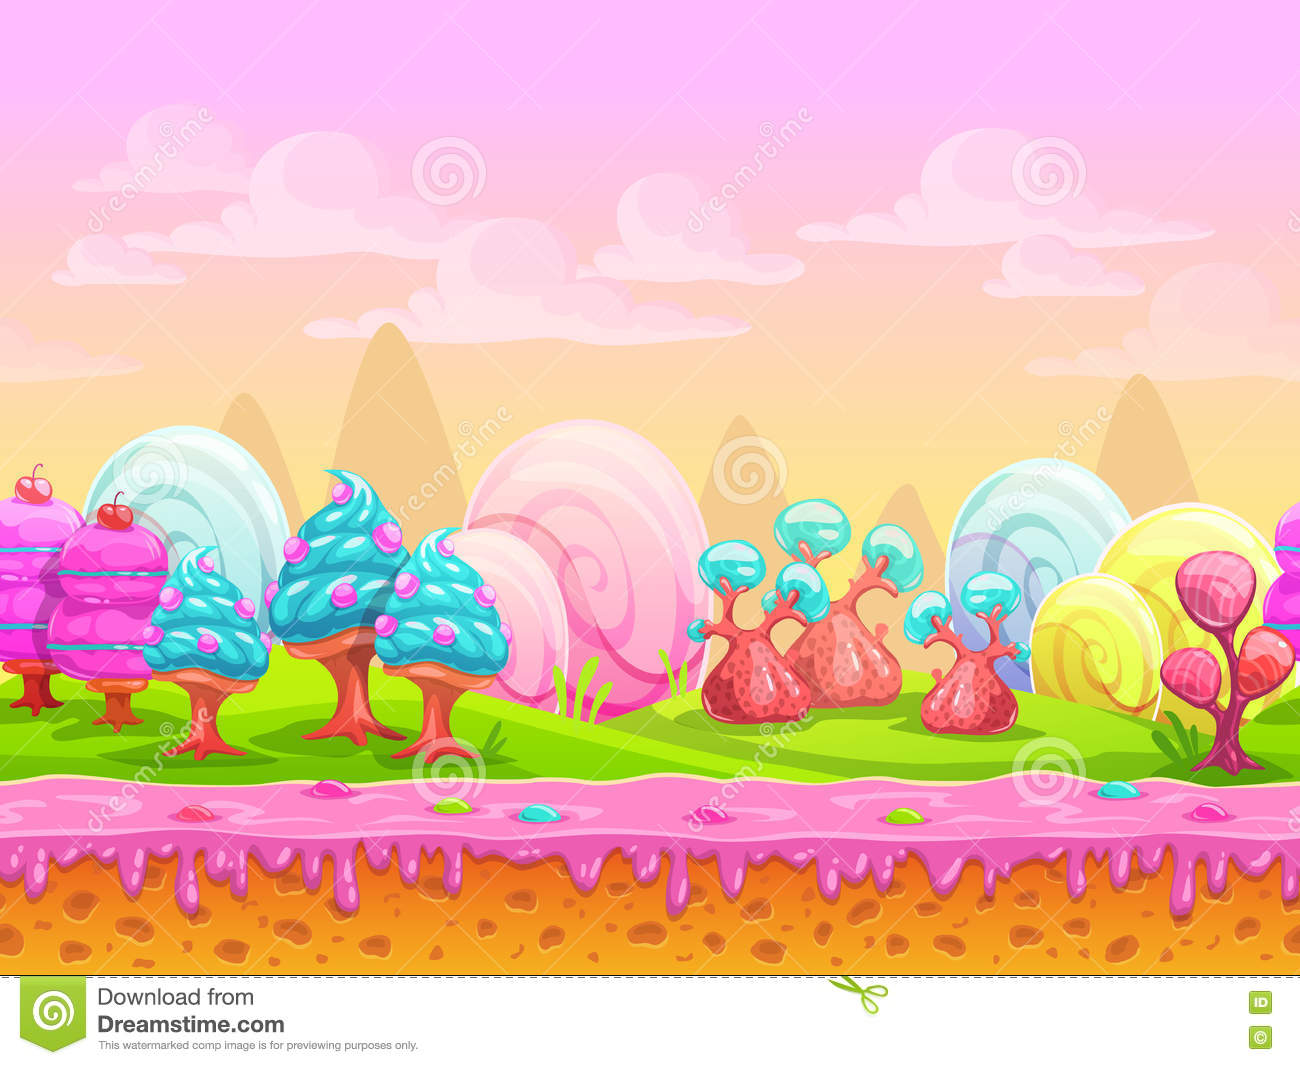 candy world wallpaper - photo #31